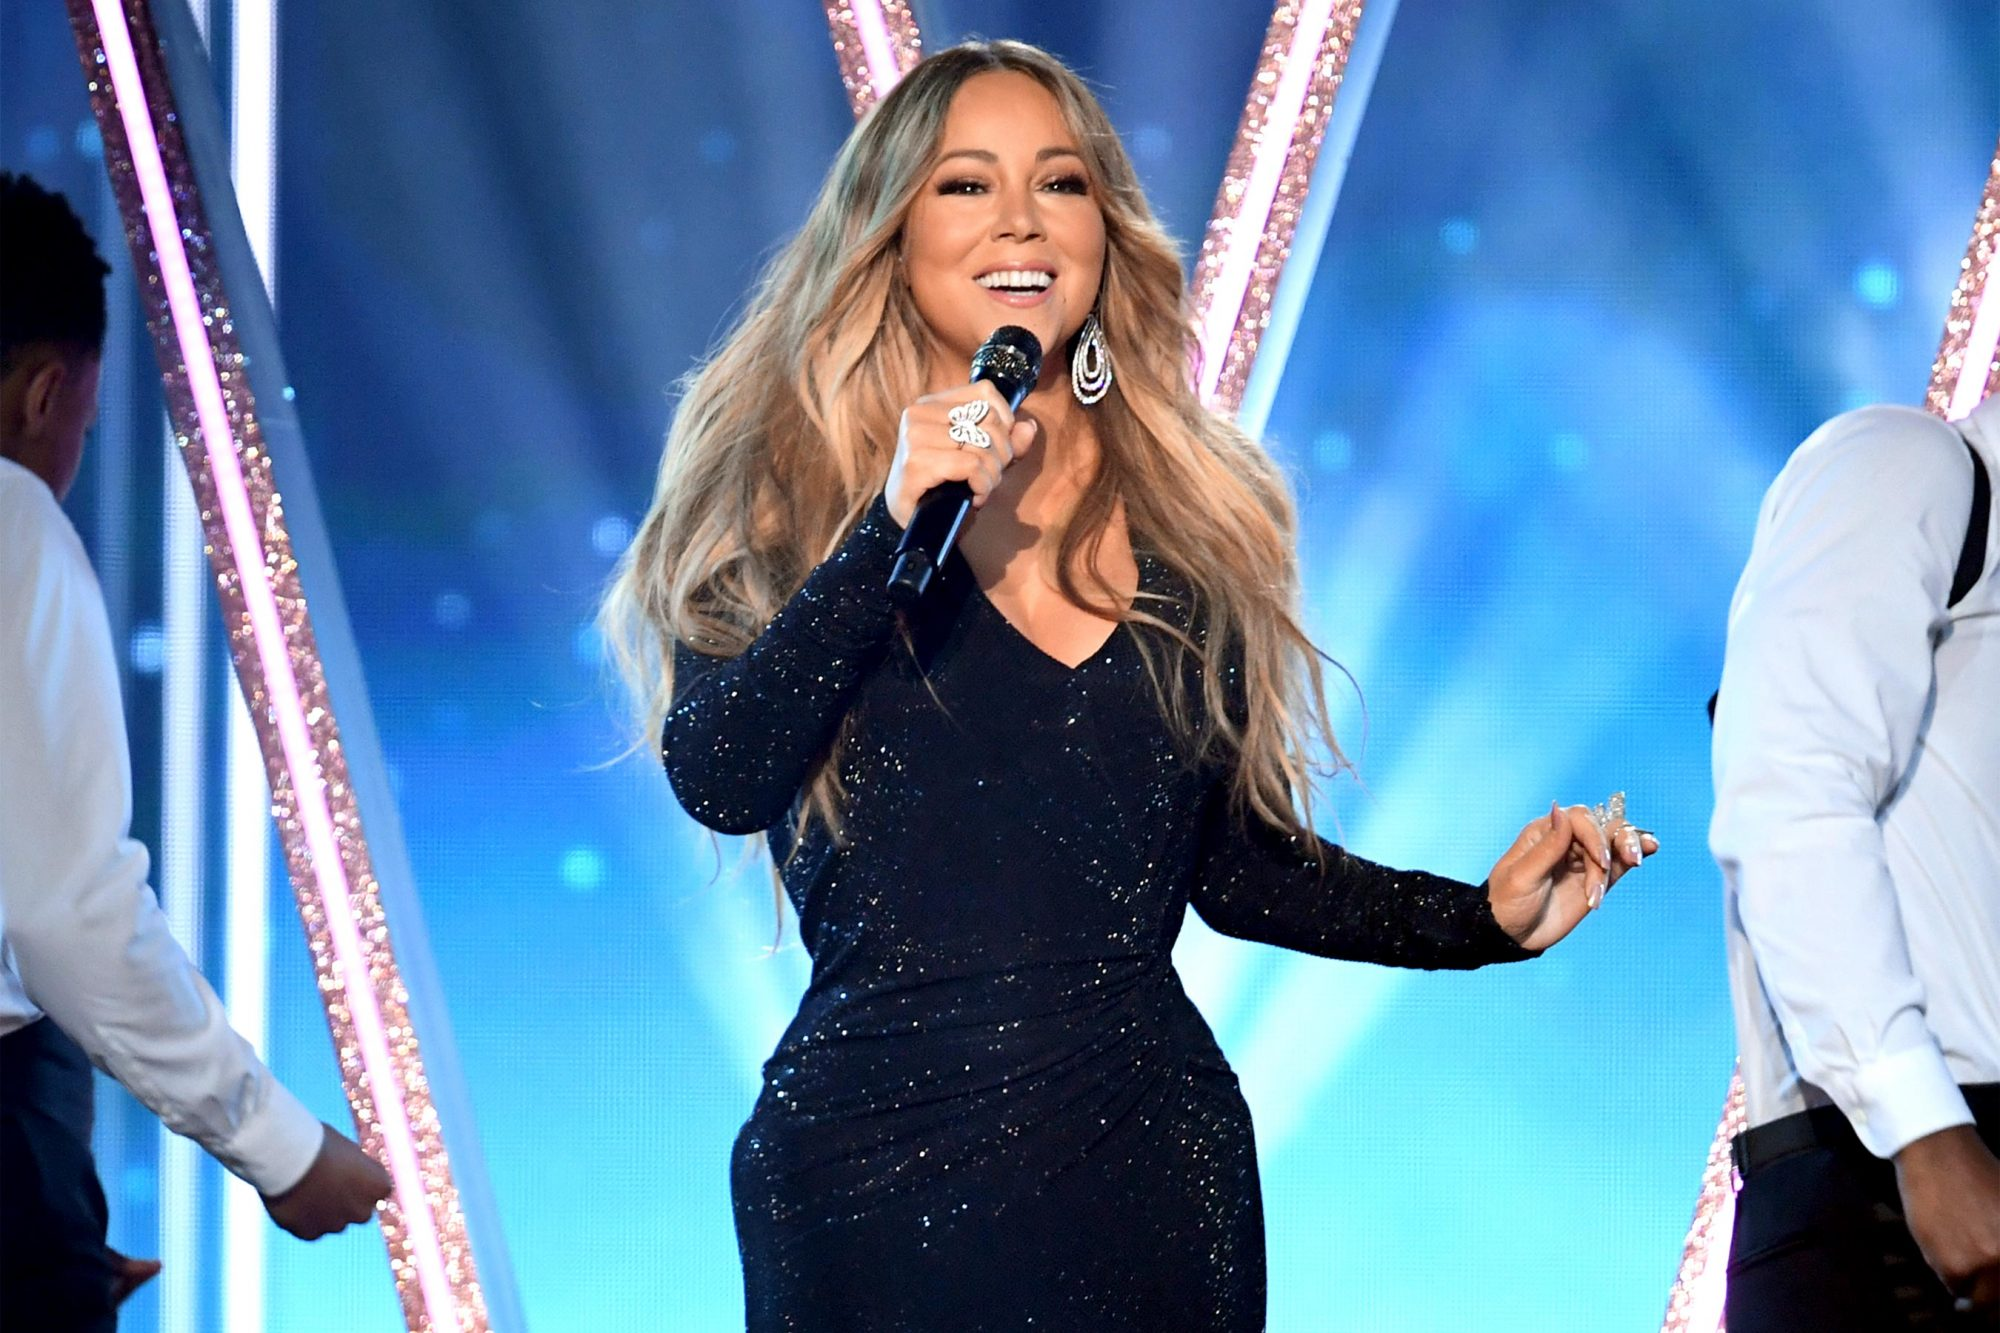 LAS VEGAS, NEVADA - MAY 01: Honoree Mariah Carey performs onstage during the 2019 Billboard Music Awards at MGM Grand Garden Arena on May 01, 2019 in Las Vegas, Nevada. (Photo by Kevin Winter/Getty Images for dcp)